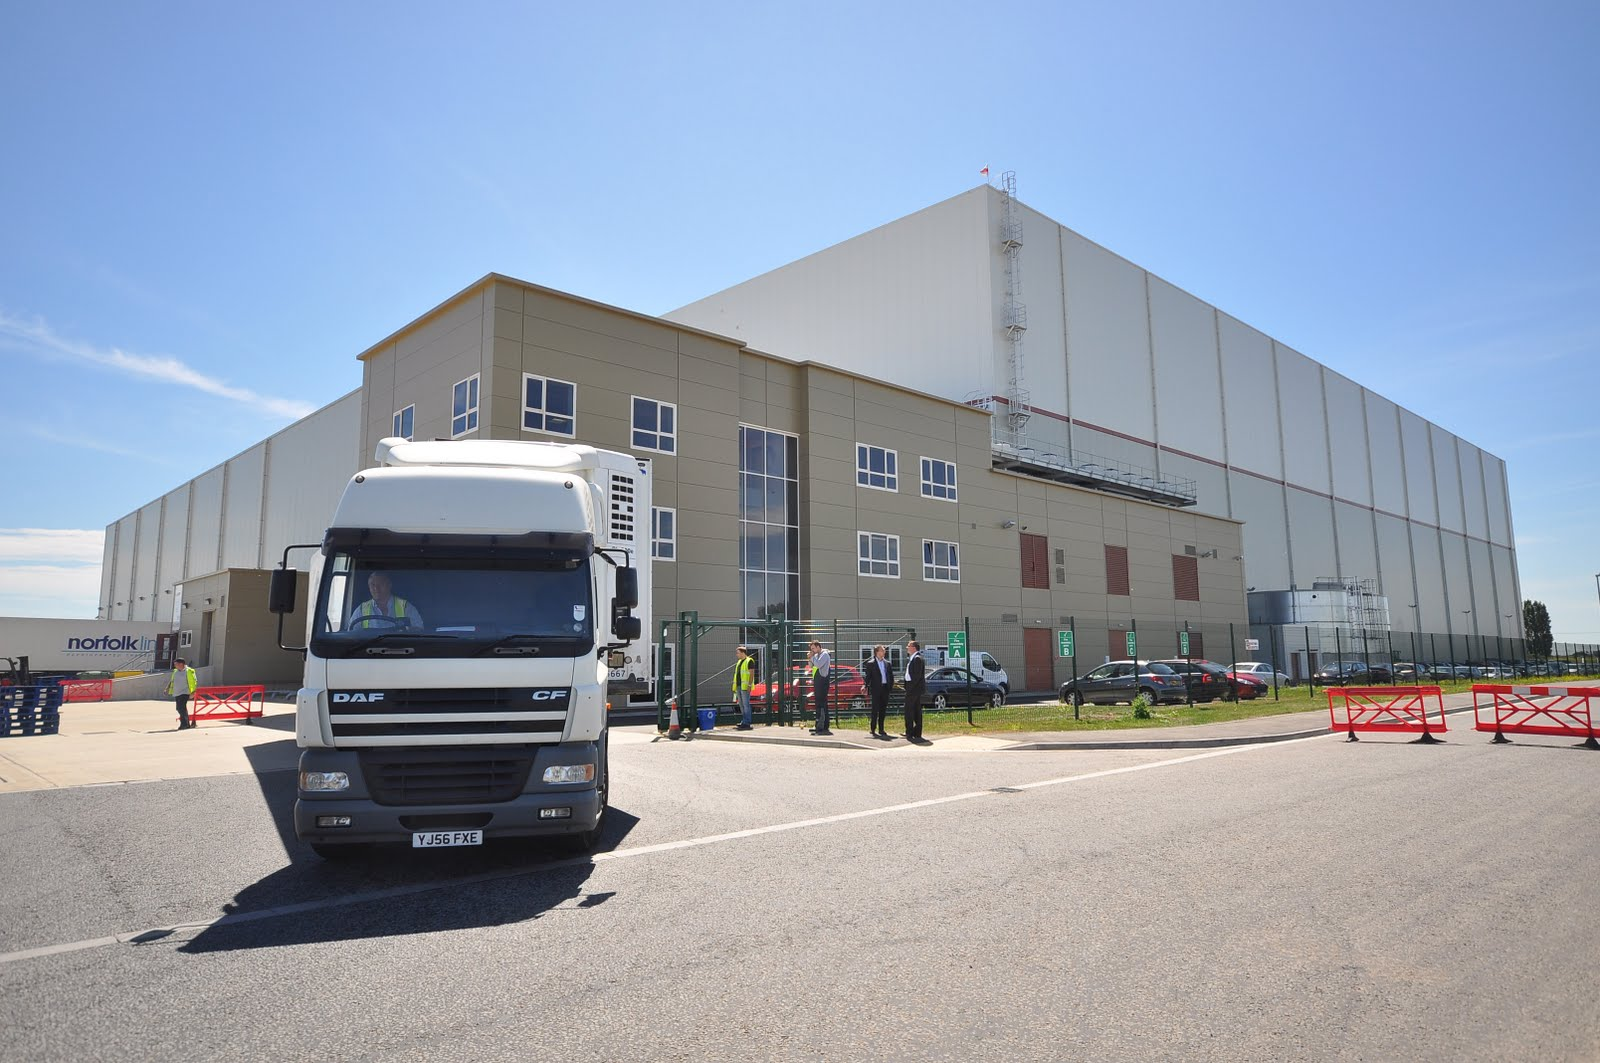 inward and outward logistics movemnet Migo with 107 movemnet will be done at gate,then account doc will be craeted then at the store, 109 movement will be created 2) in the migo with 107 at gate some data like a) name of the transporter,b) lr date c) lr number d) dc number e) dc date, lorry number, these details shall be.